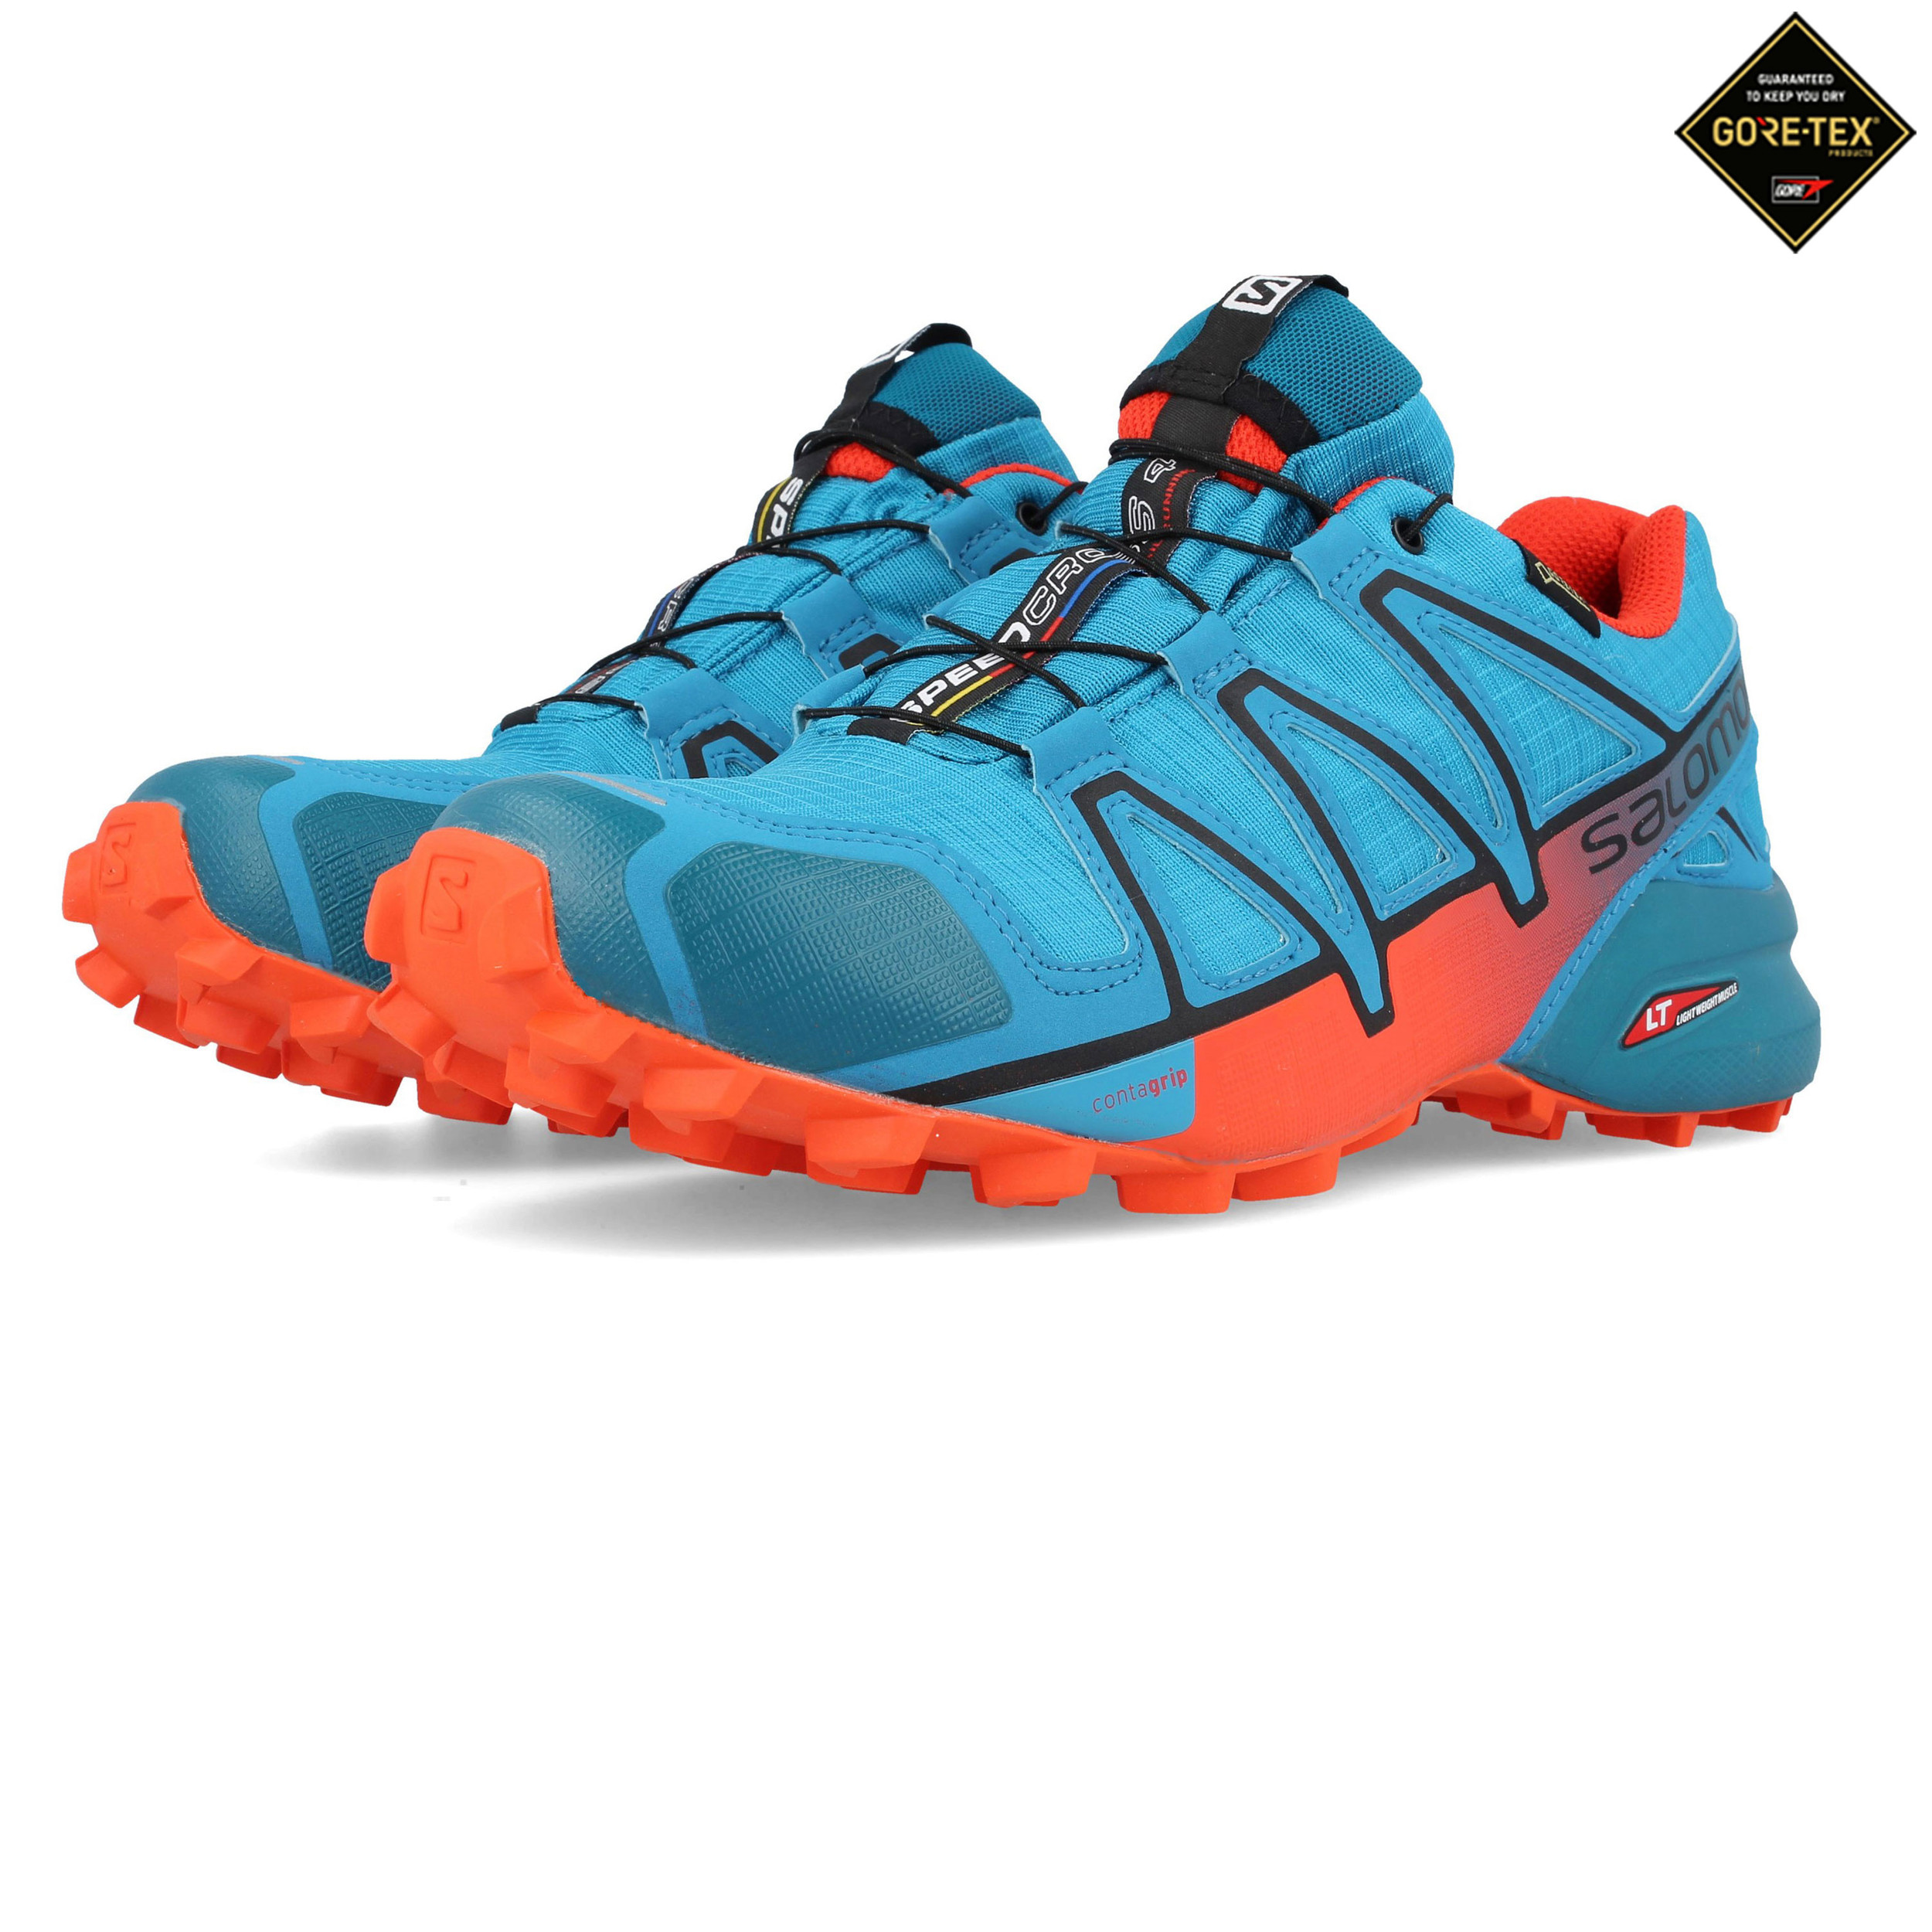 sale retailer 596c8 593b7 Details about Salomon Mens Speedcross 4 GORE-TEX Trail Running Shoes  Trainers Sneakers Blue